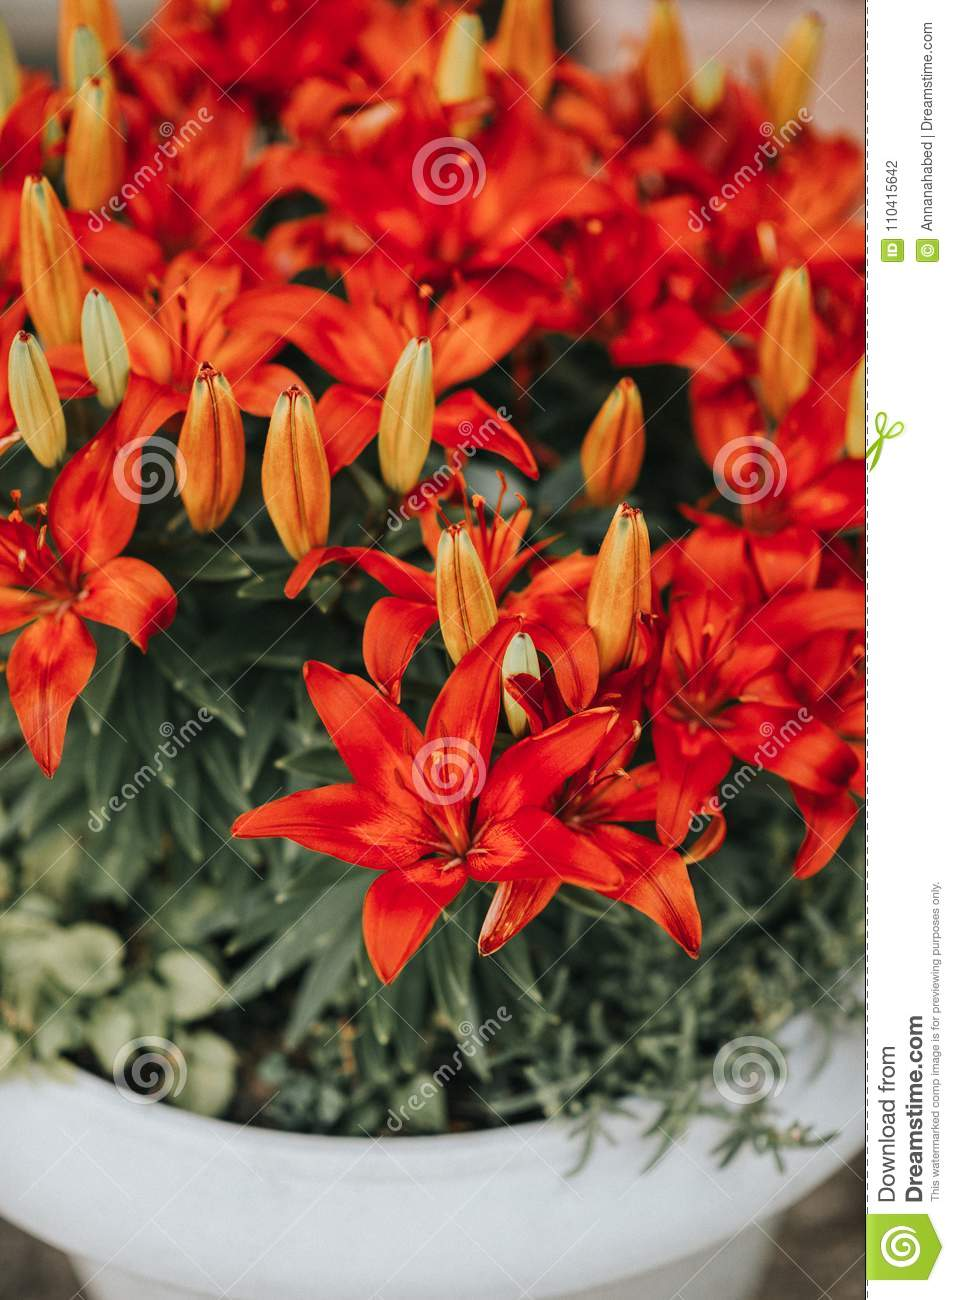 Beautiful red lily flowers stock photo image of green 110415642 download beautiful red lily flowers stock photo image of green 110415642 izmirmasajfo